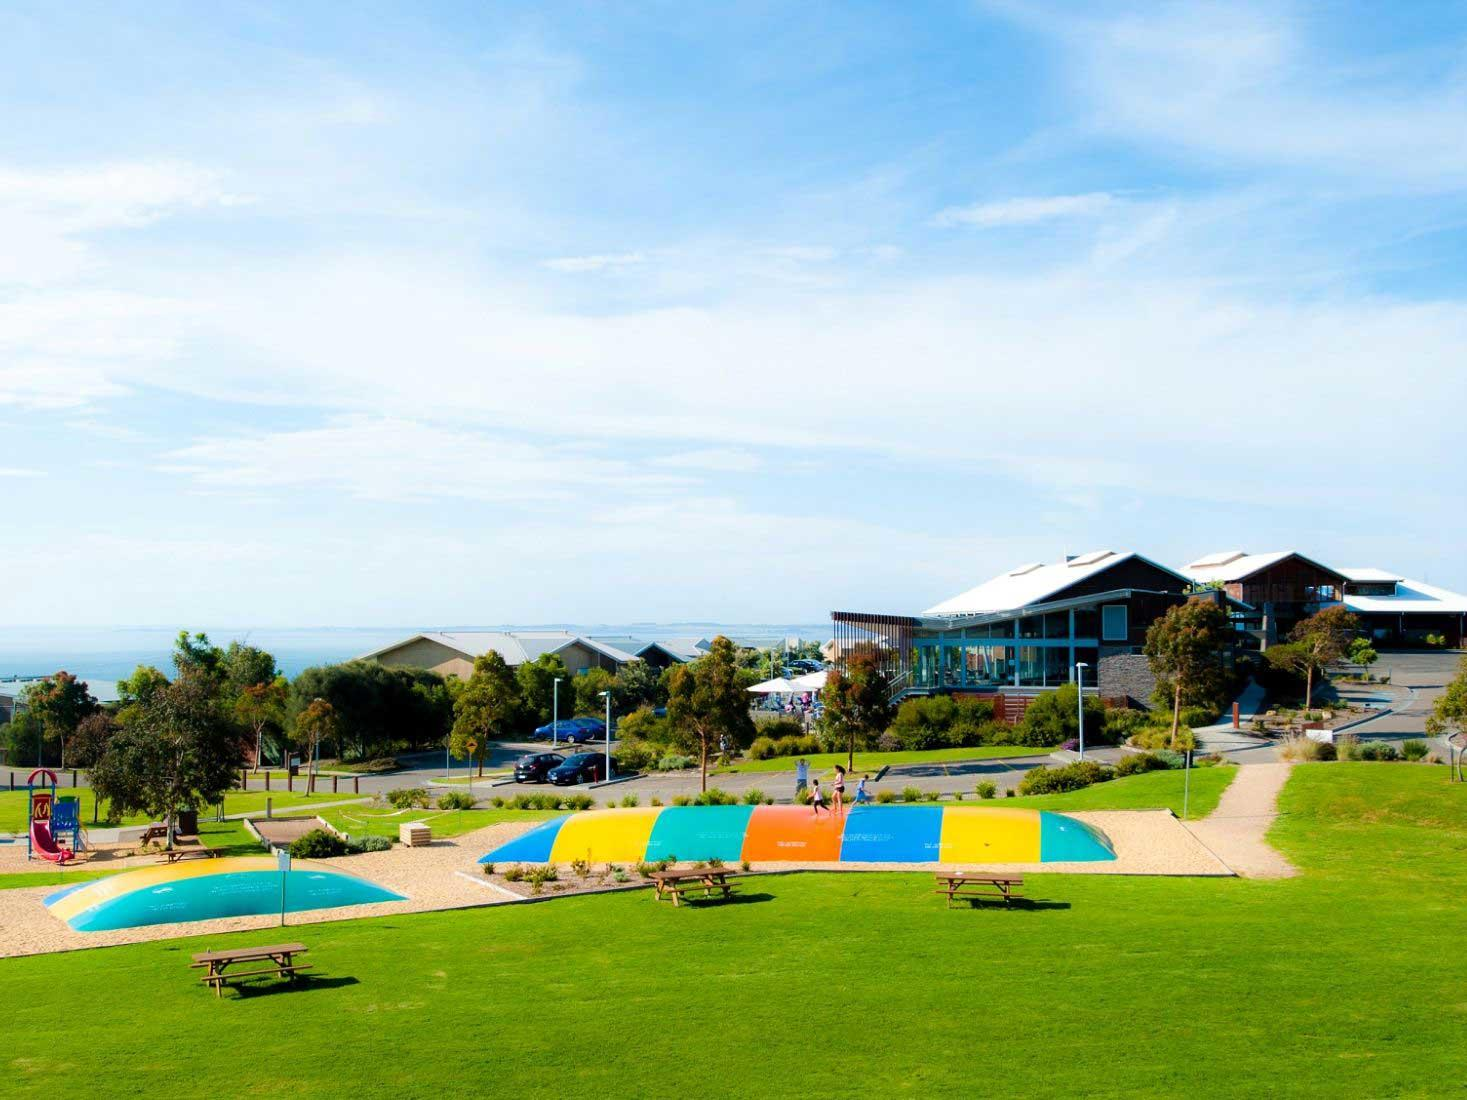 landscape view of  jumping pillows at Silverwater Resort